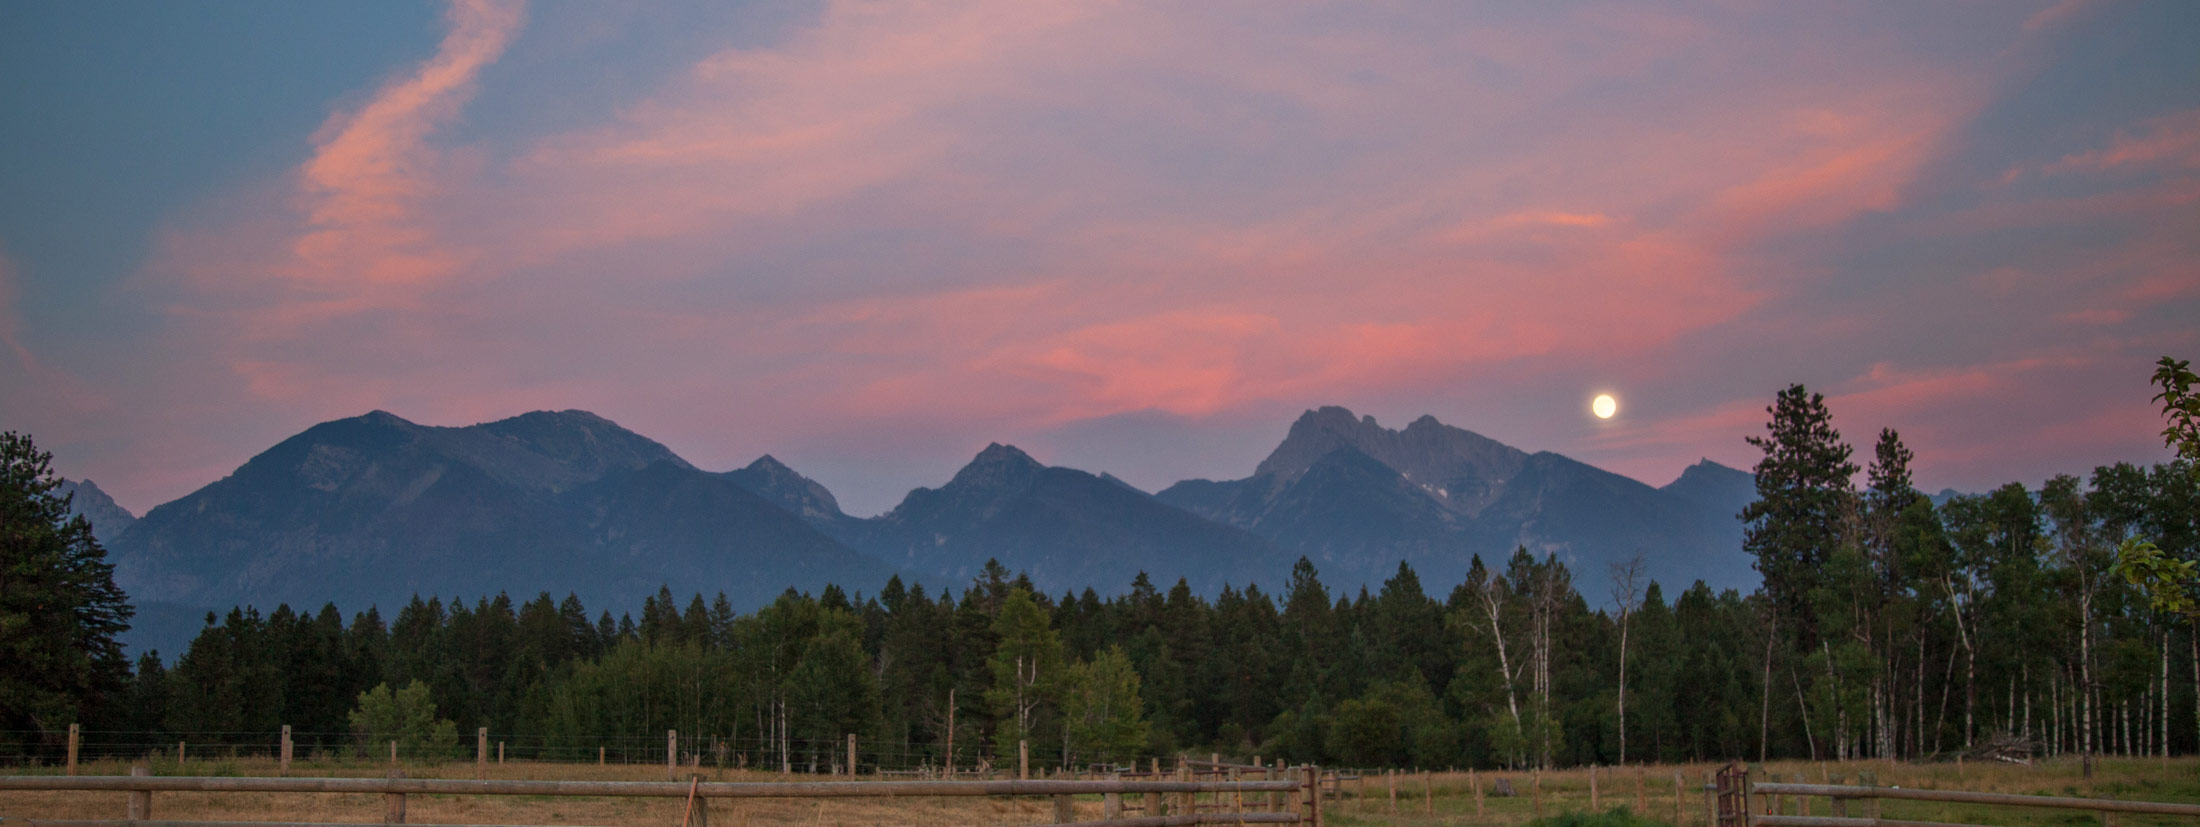 5 Reasons To Have Your Wedding in Western Montana